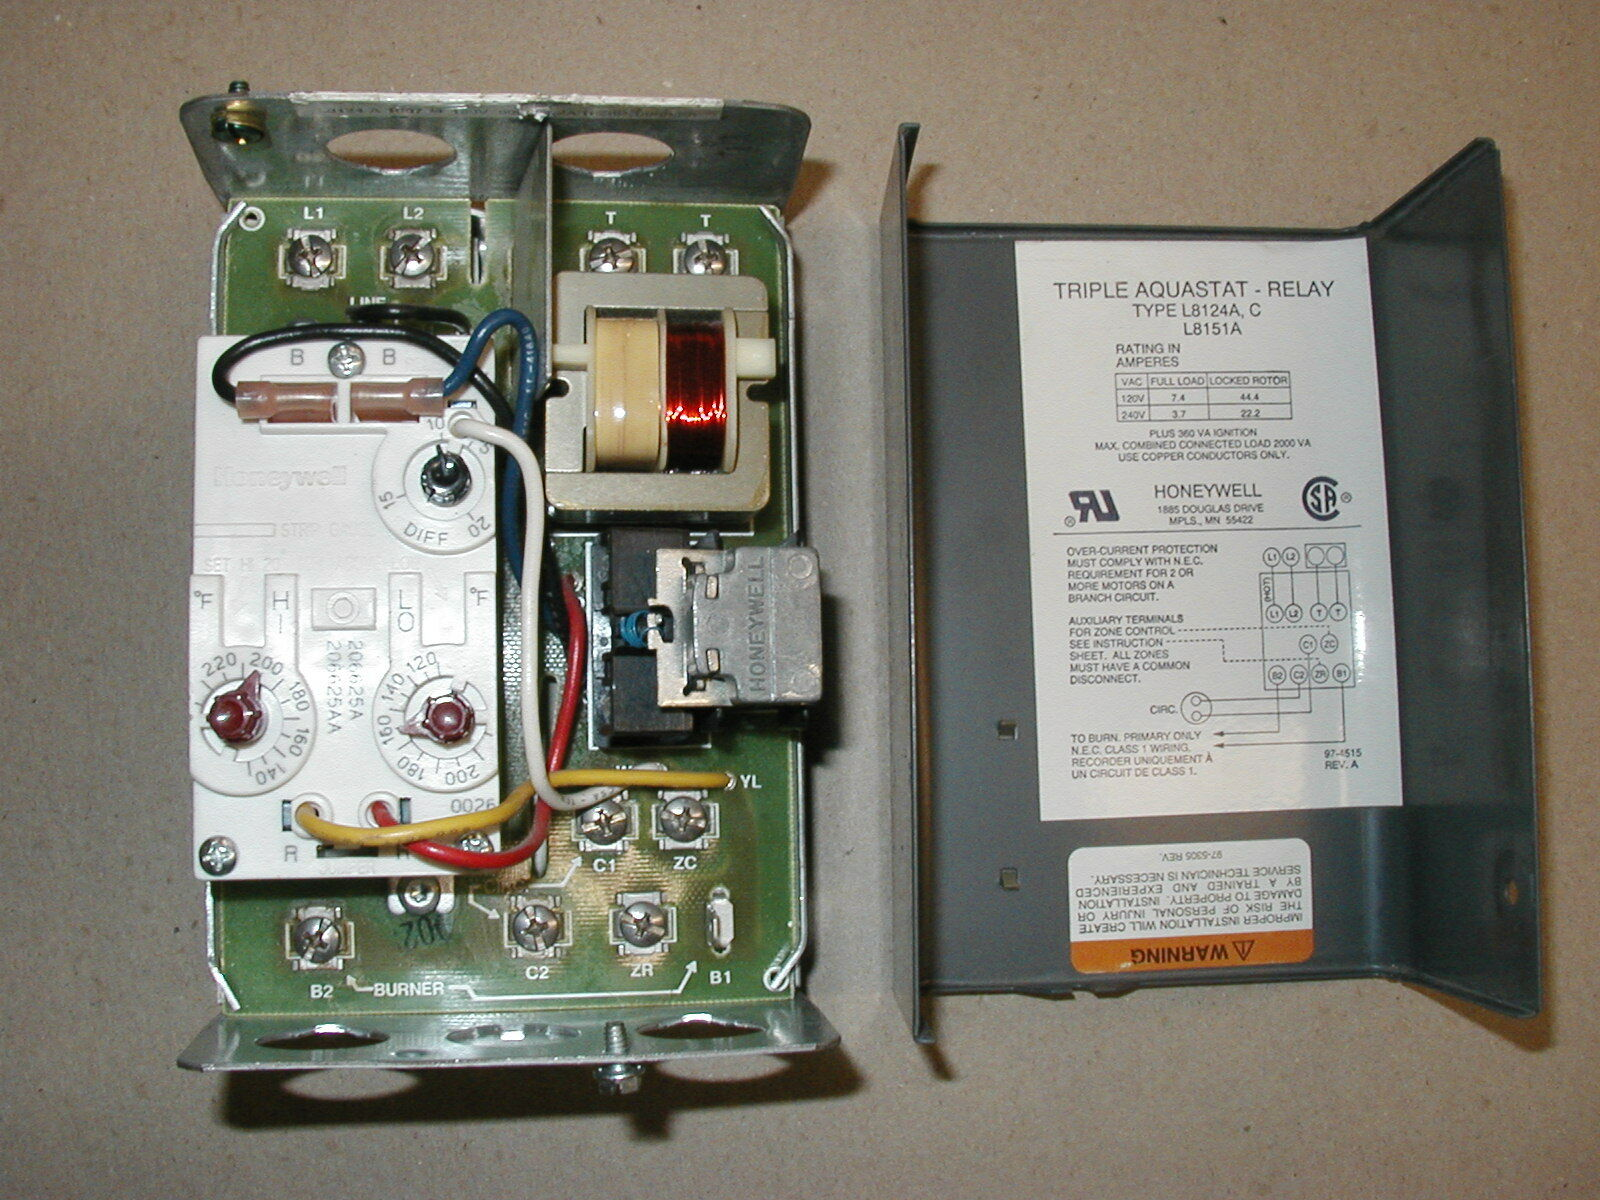 Honeywell Triple Aquastat Wiring Auto Electrical Diagram Taco L8124a Oil Burner Relay Control Ebay Rh Com